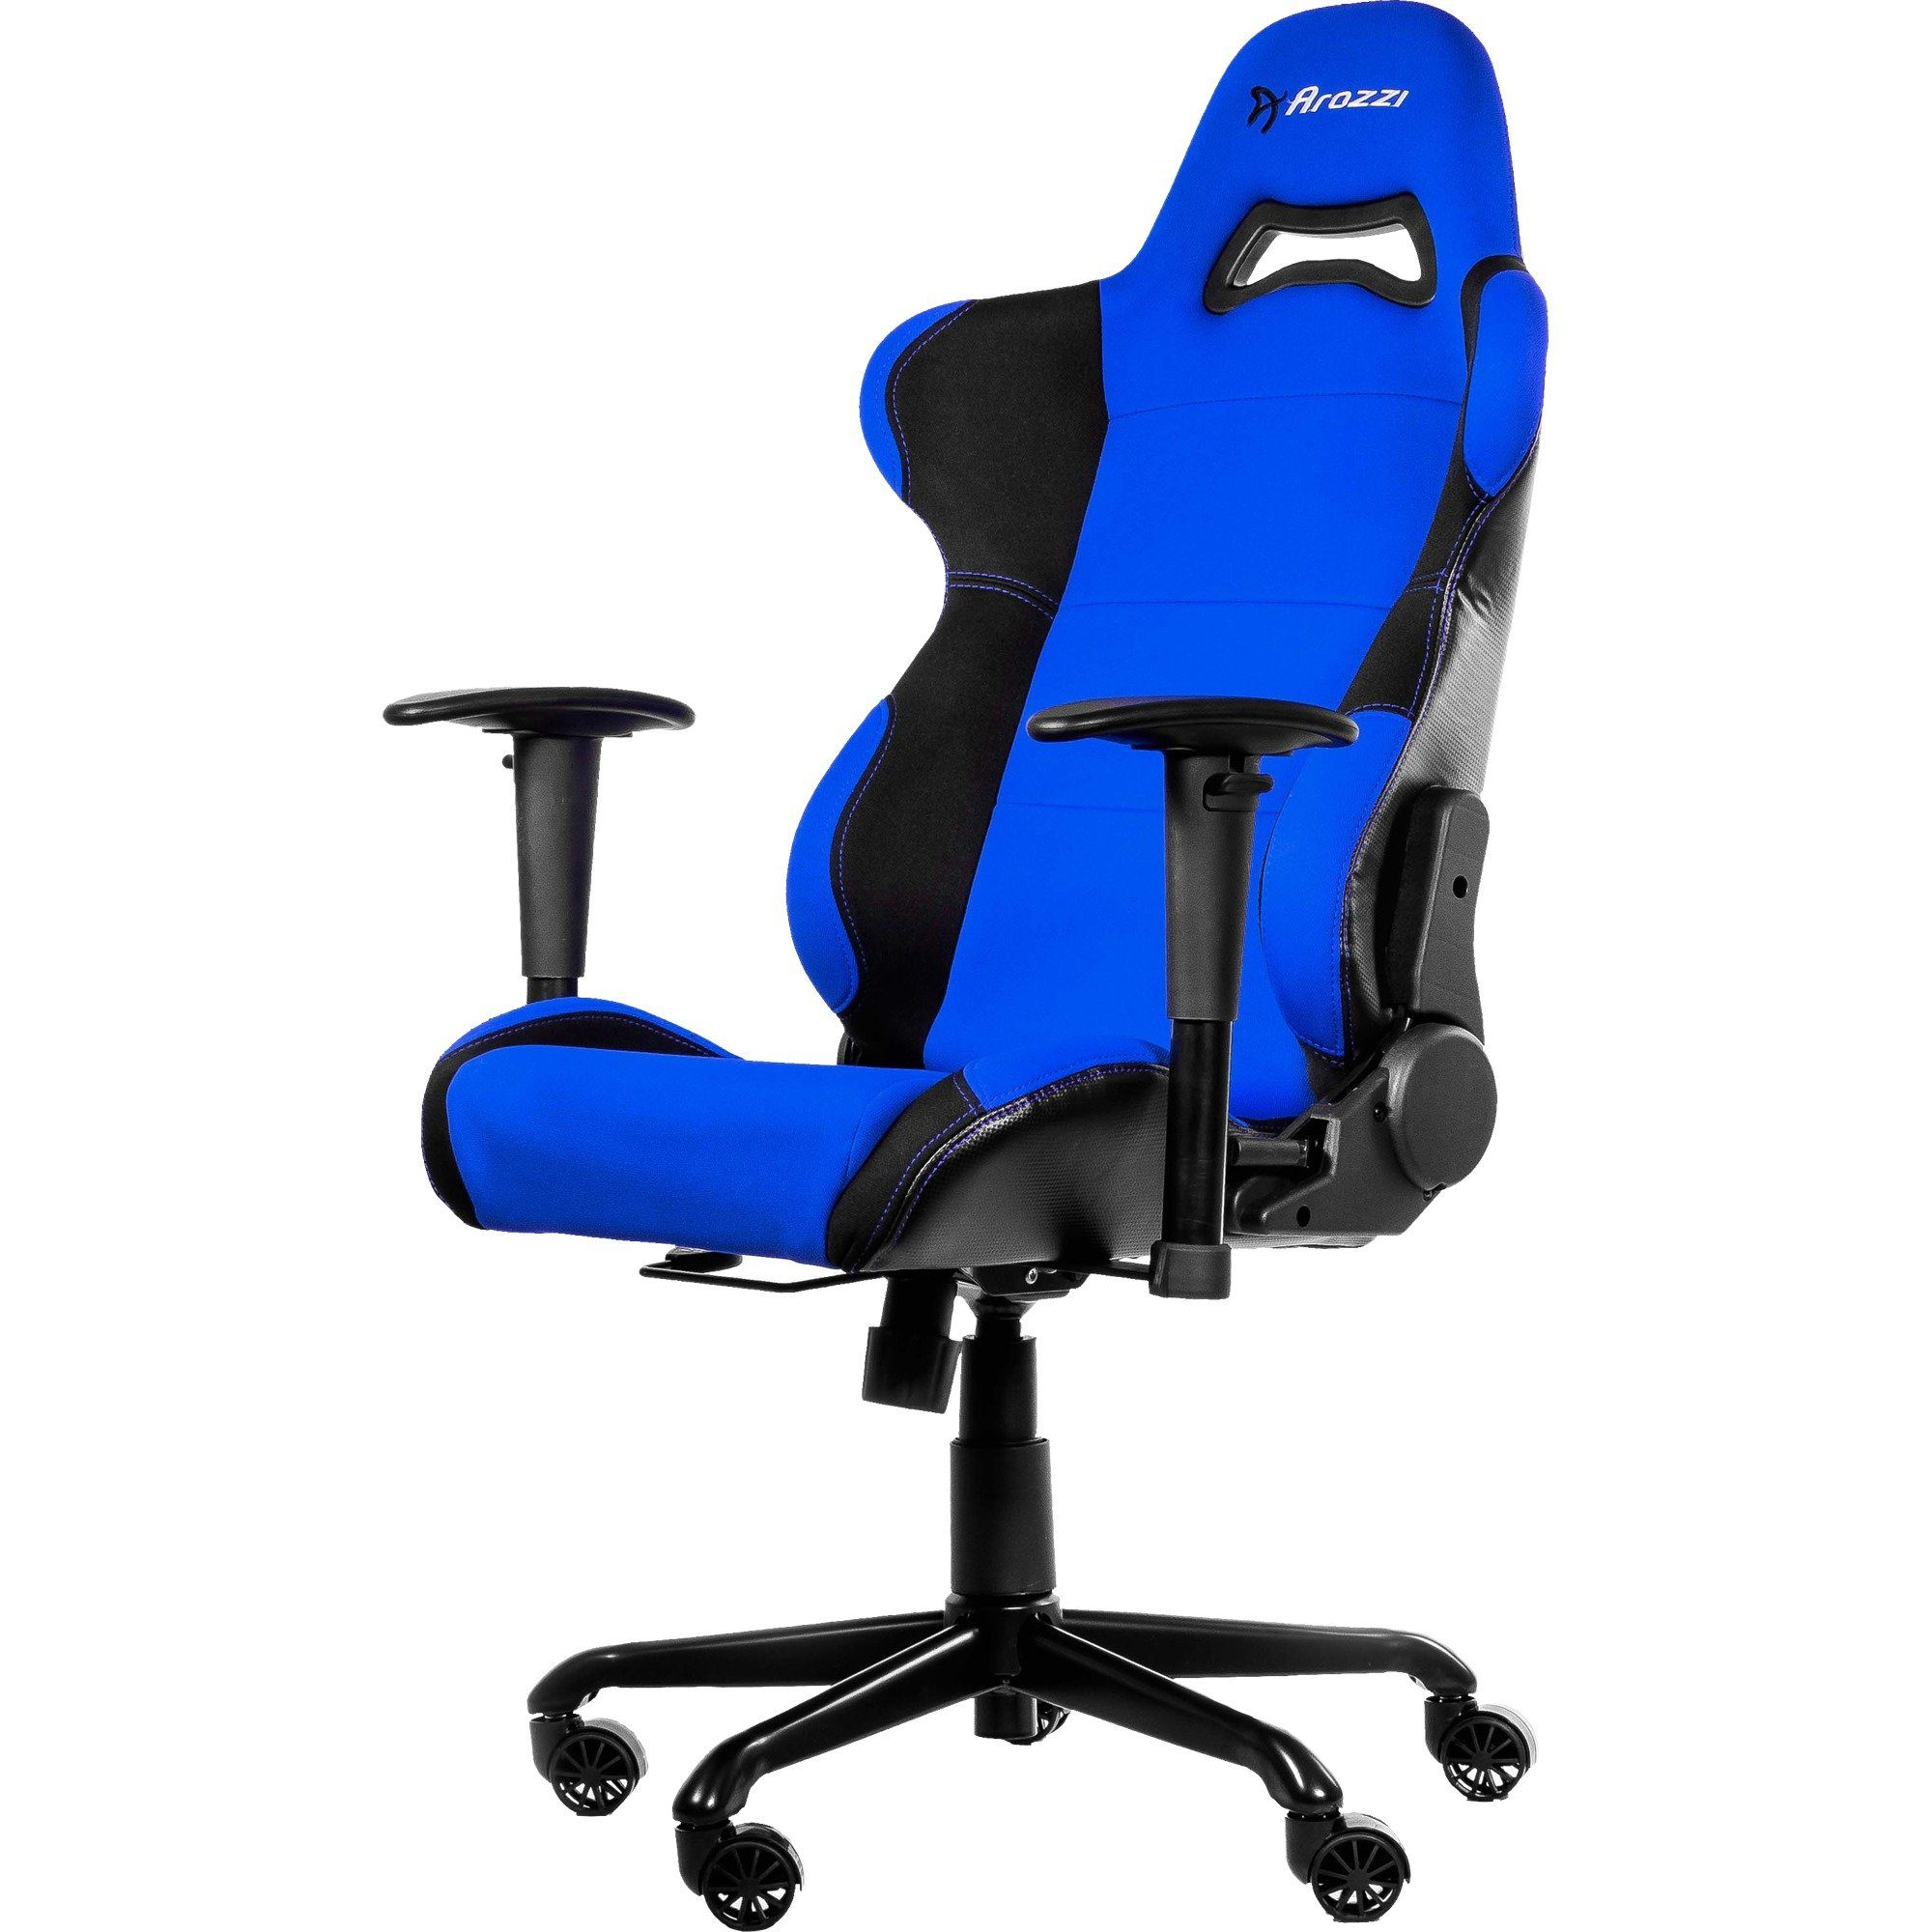 Arozzi Spielsitz »Torretta Gaming Chair«